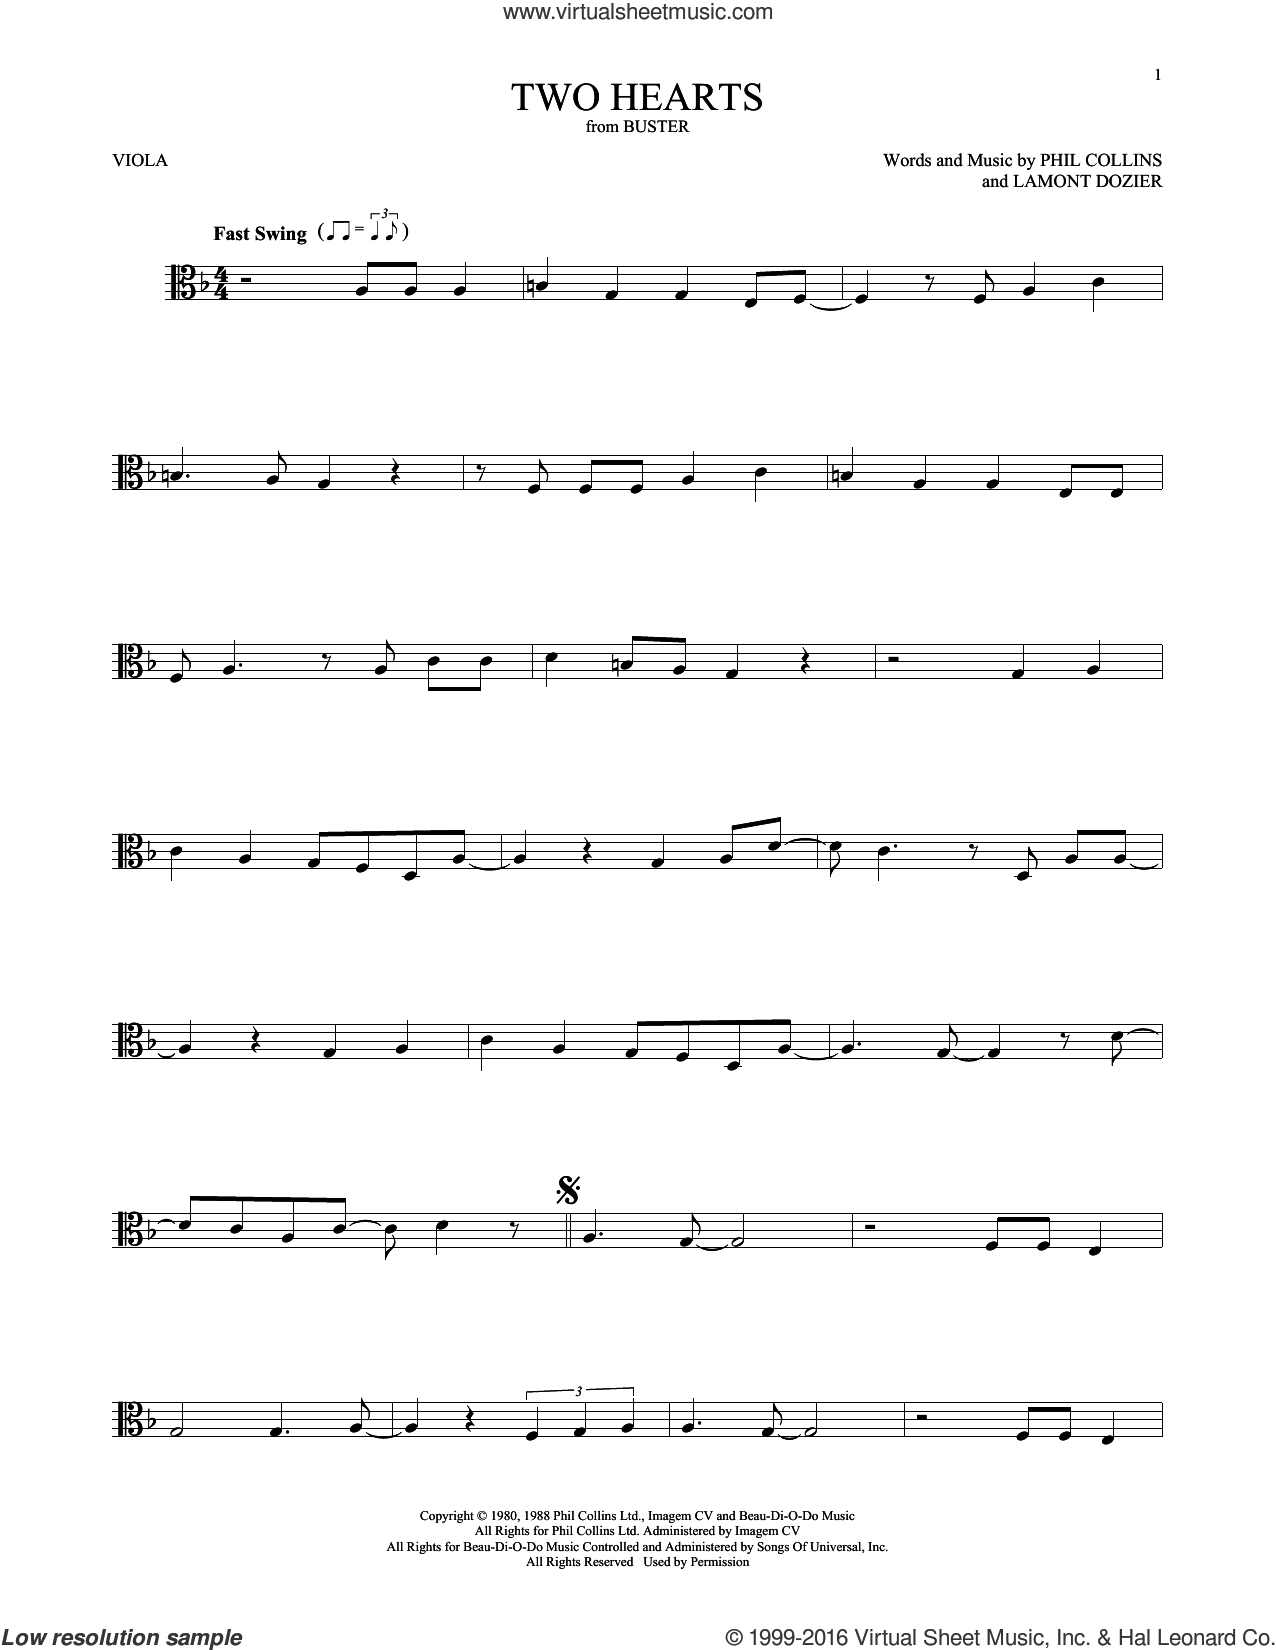 Two Hearts sheet music for viola solo by Phil Collins and Lamont Dozier, intermediate